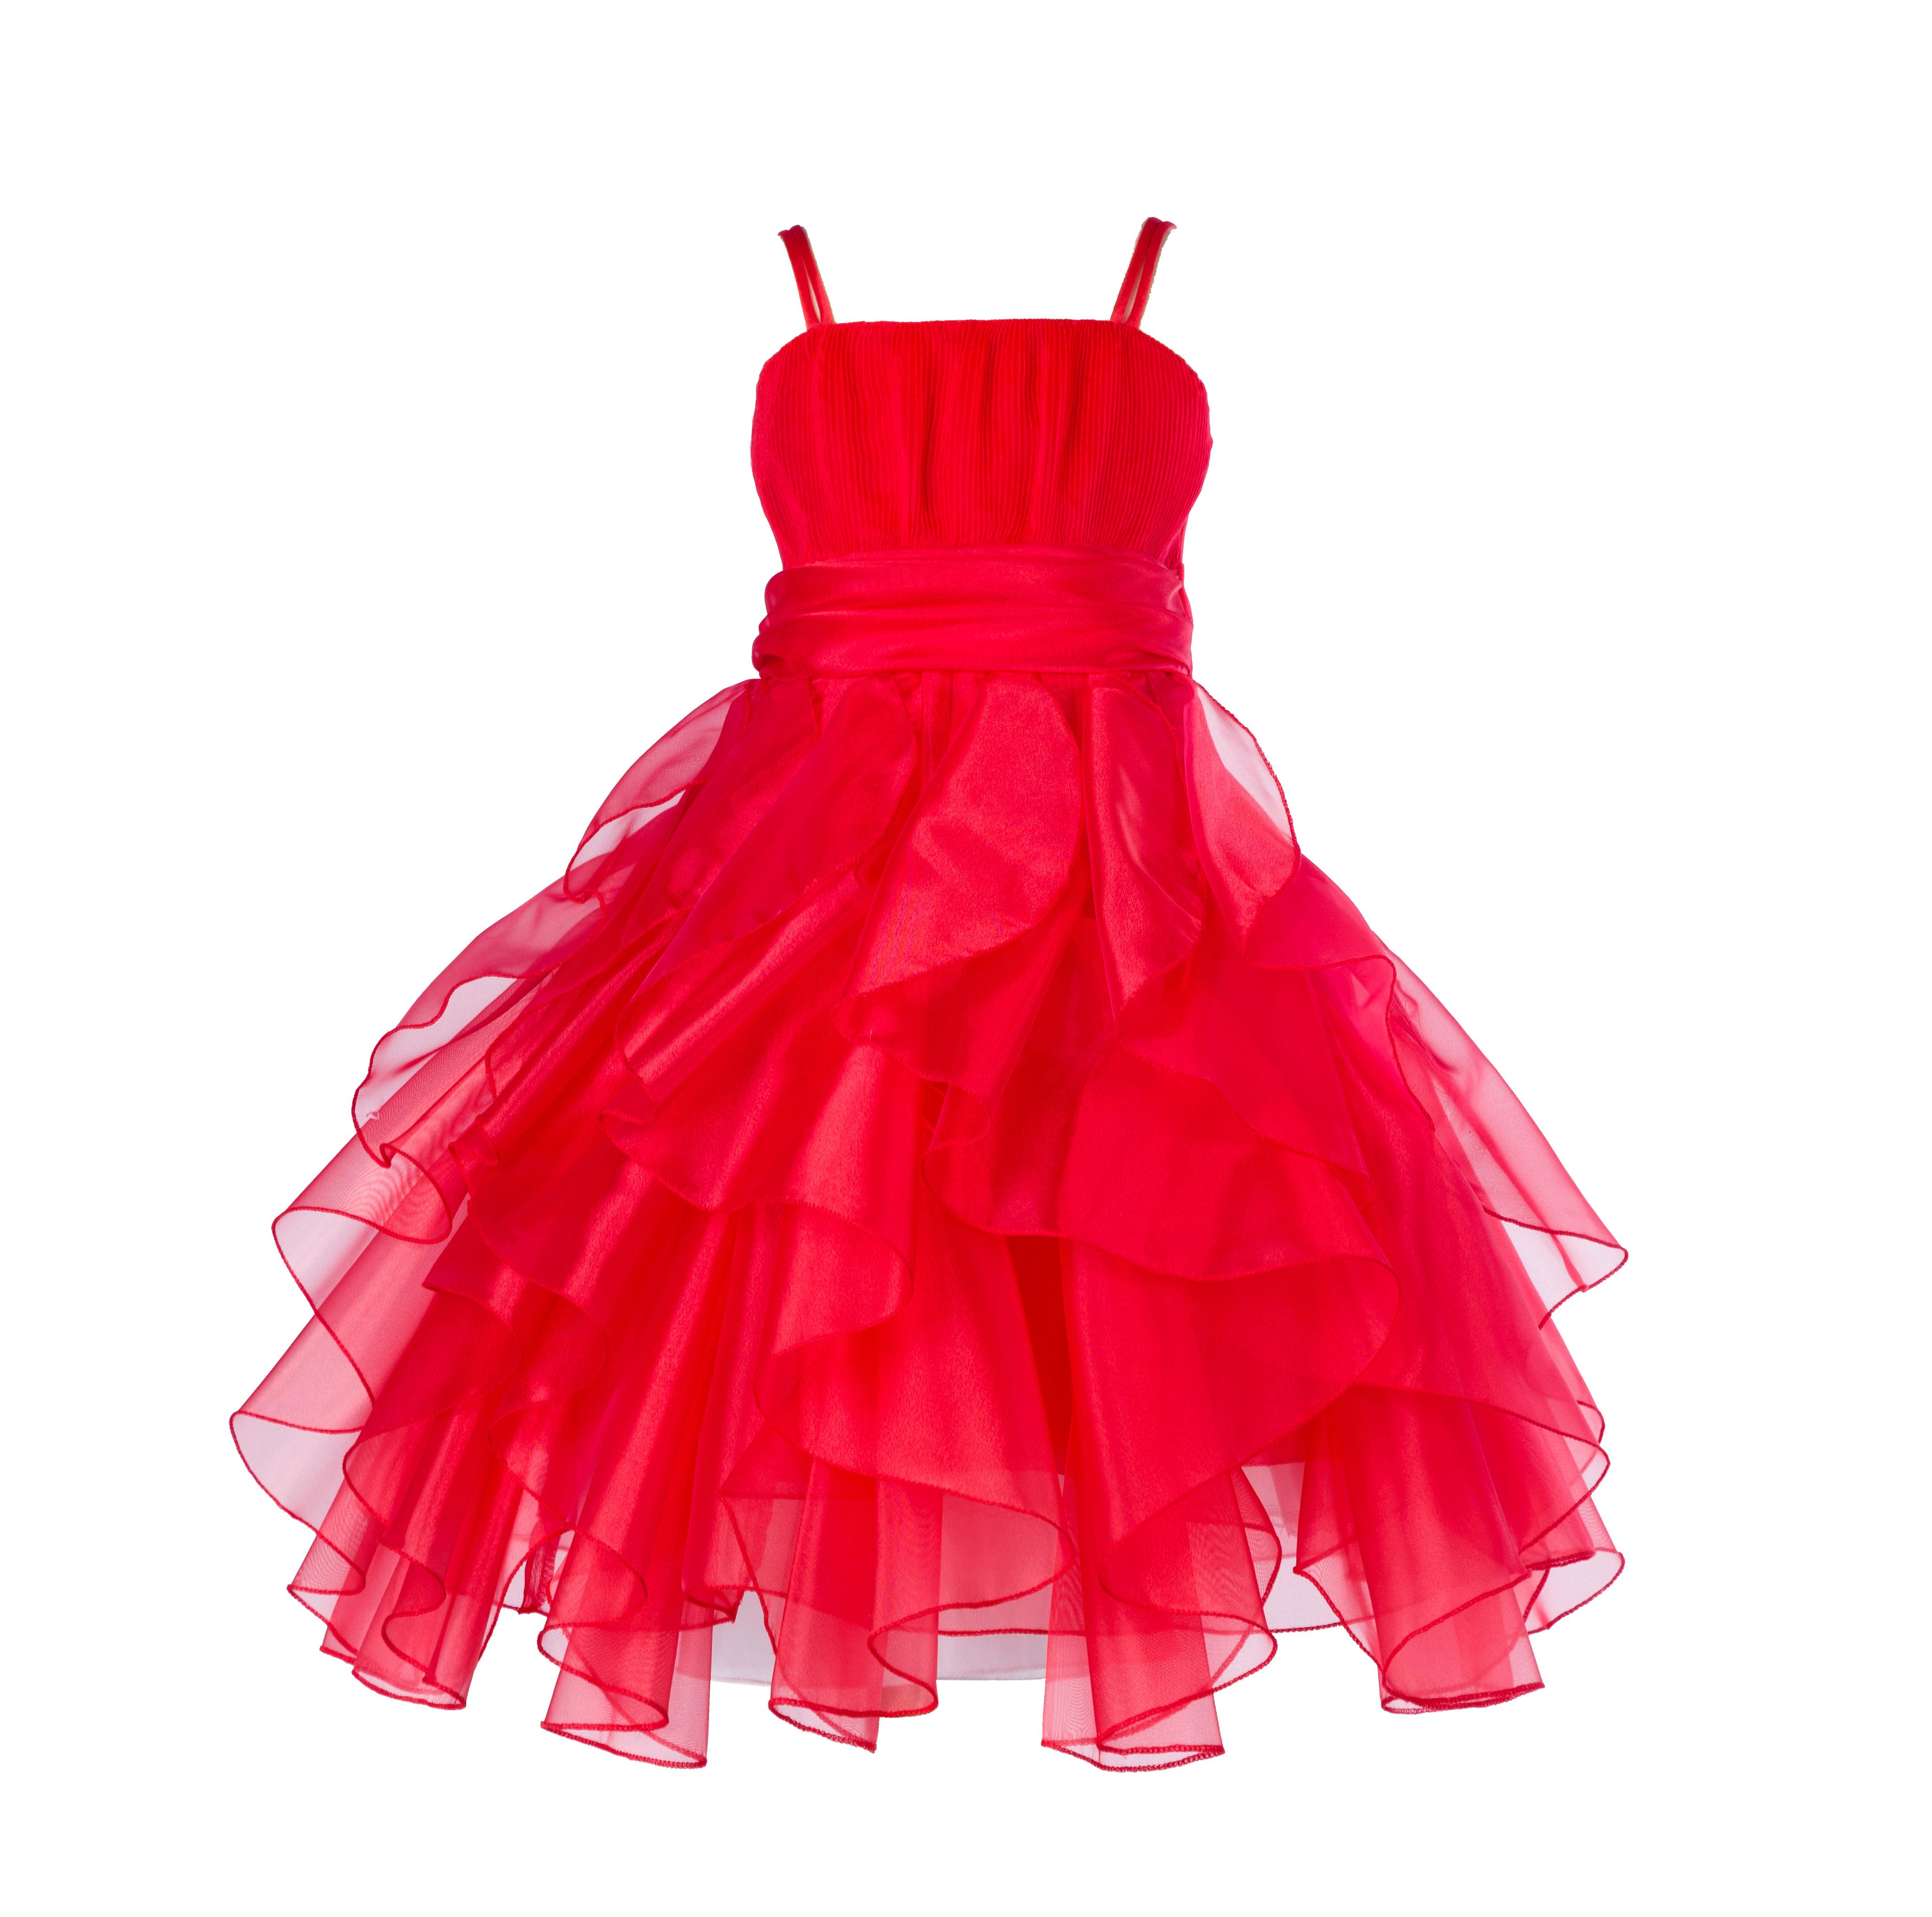 Ekidsbridal Organza Red Ruffled Bodice Christmas Junior Bridesmaid Recital Easter Holiday Wedding Pageant Occasions Communion Princess Birthday Girls Clothing Baptism 151S size 12 Flower Girl Dress